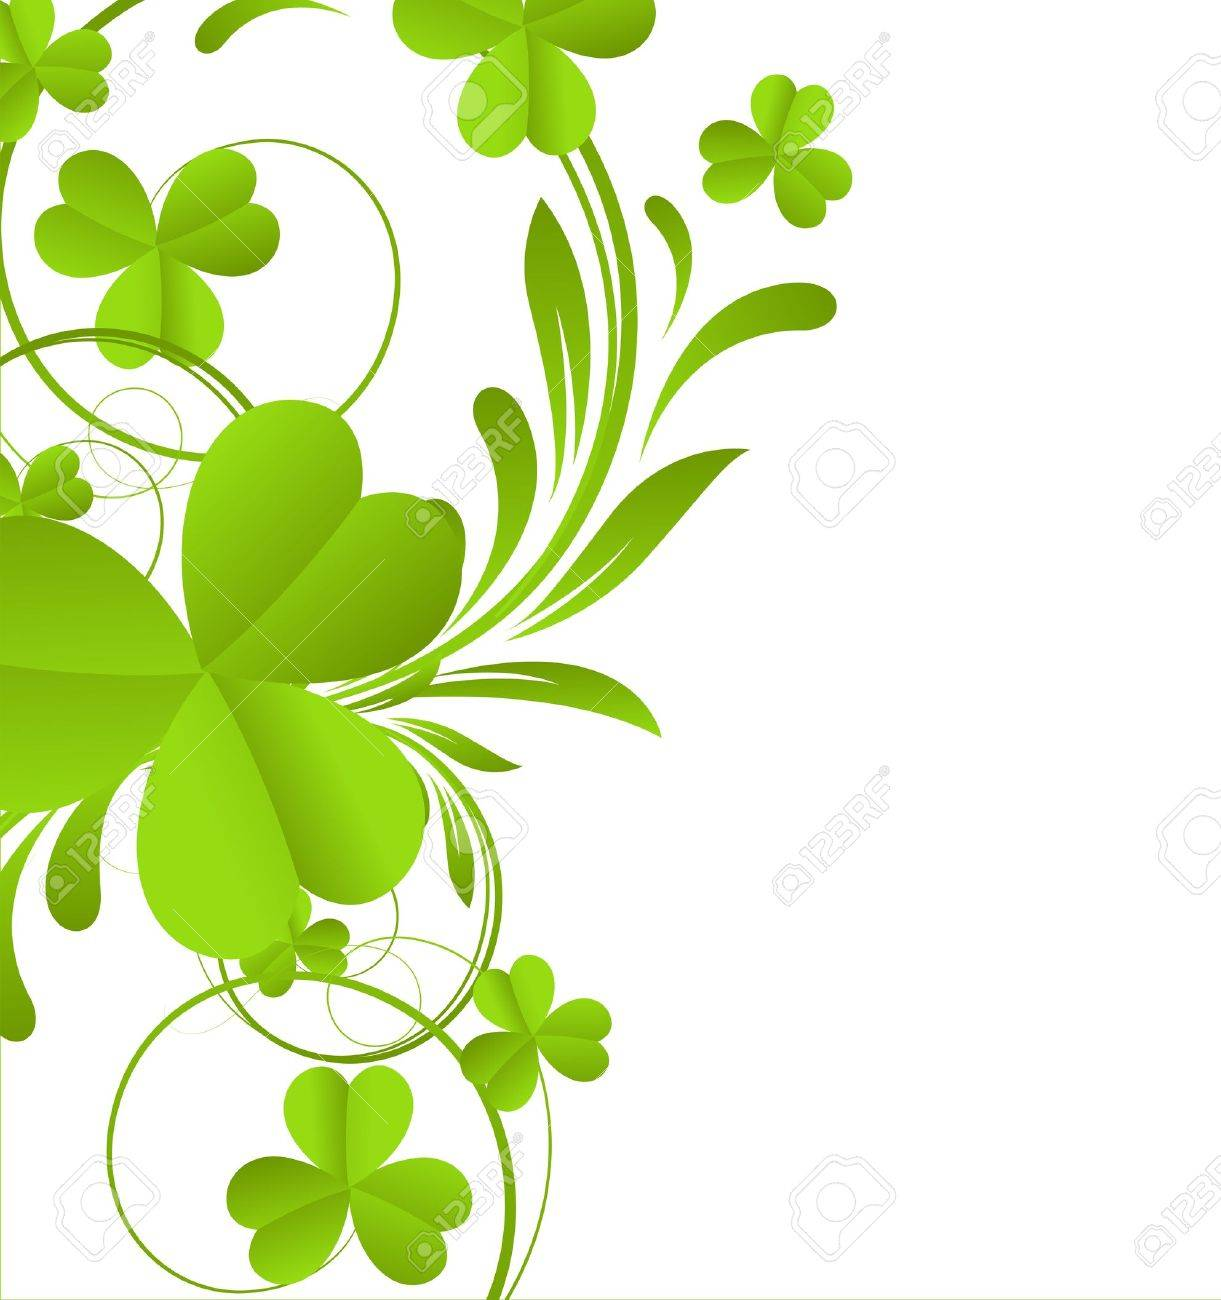 swirl shamrock element royalty free cliparts vectors and stock